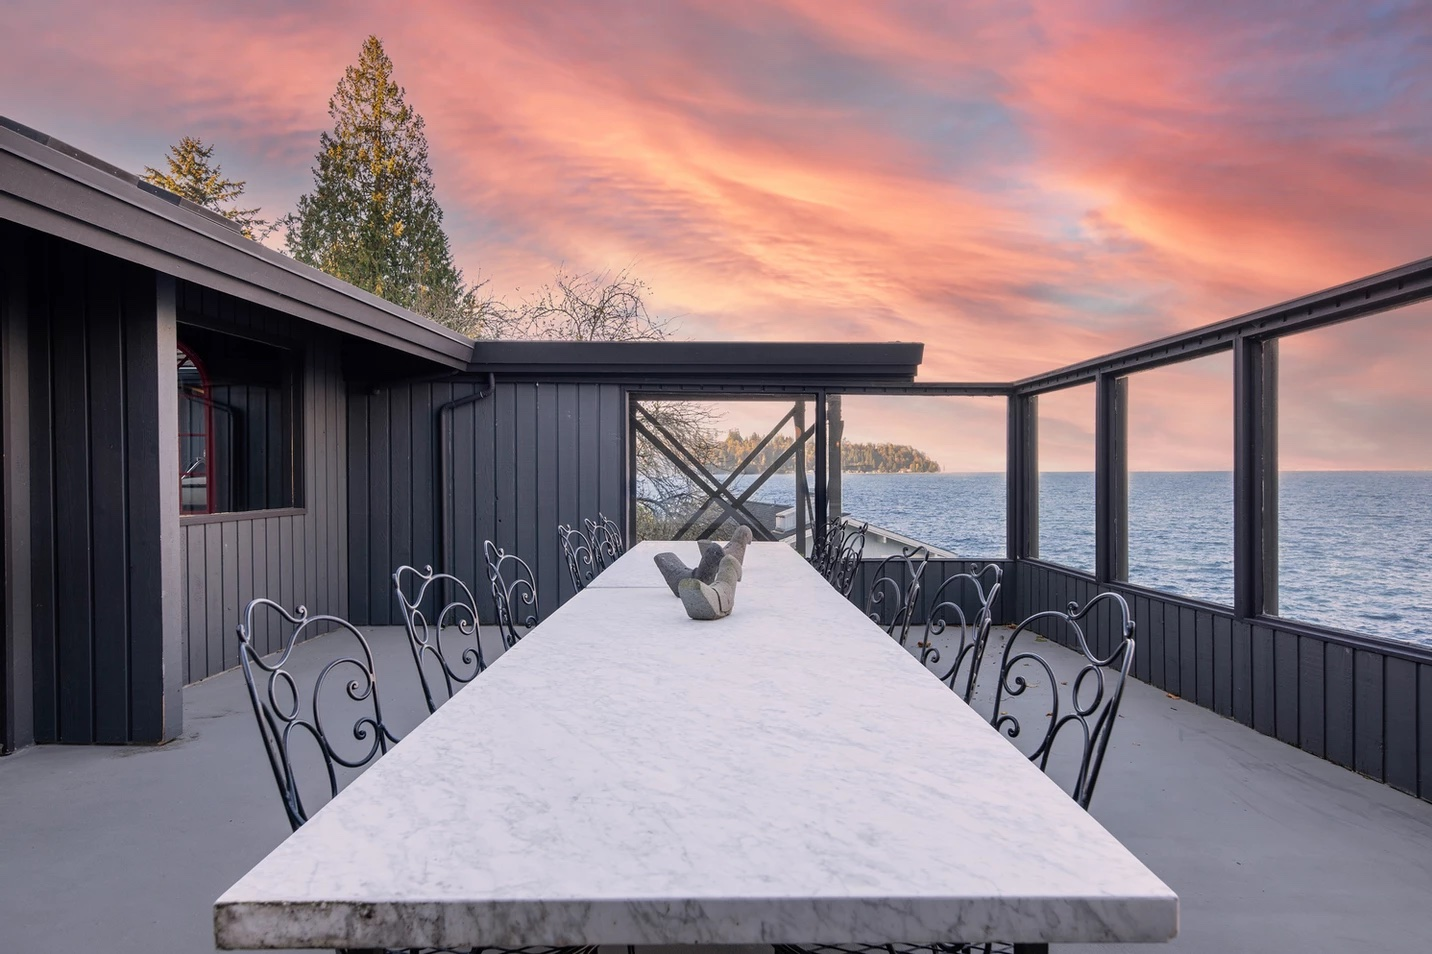 "This mid-century home on{&nbsp;}Vashon Island is all-around stunning, but the one feature that immediately stands out is its epic pool with a mural of David Bowie — seriously, how cool is that?! The 5,500-square-foot main residence has five bedrooms and 3.5 bathrooms, with three additional bedrooms and a bathroom in the guest residence. This property boasts nearly 300 ft. of private waterfront with beautiful views, a boat launch and custom wine storage. Listed by{&nbsp;}Kayse Gundram of Windermere. More info{&nbsp;}<a  href=""https://www.k2compound.com/"" target=""_blank"" title=""https://www.k2compound.com/"">online</a>. (Image:{&nbsp;}Kayse Gundram/Windermere Real Estate){&nbsp;}"